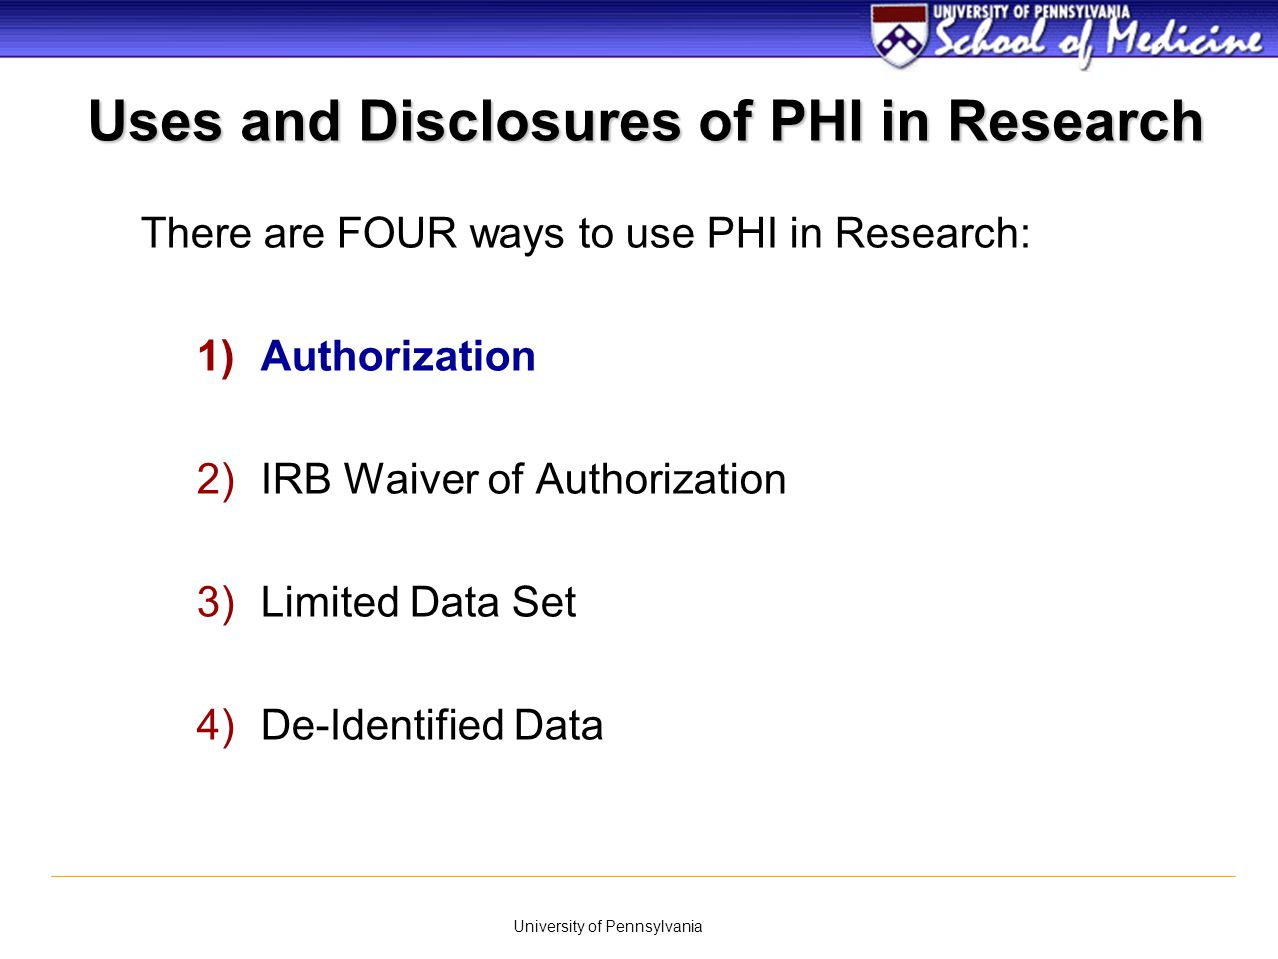 University of Pennsylvania Uses and Disclosures of PHI in Research There are FOUR ways to use PHI in Research: 1)Authorization 2)IRB Waiver of Authori